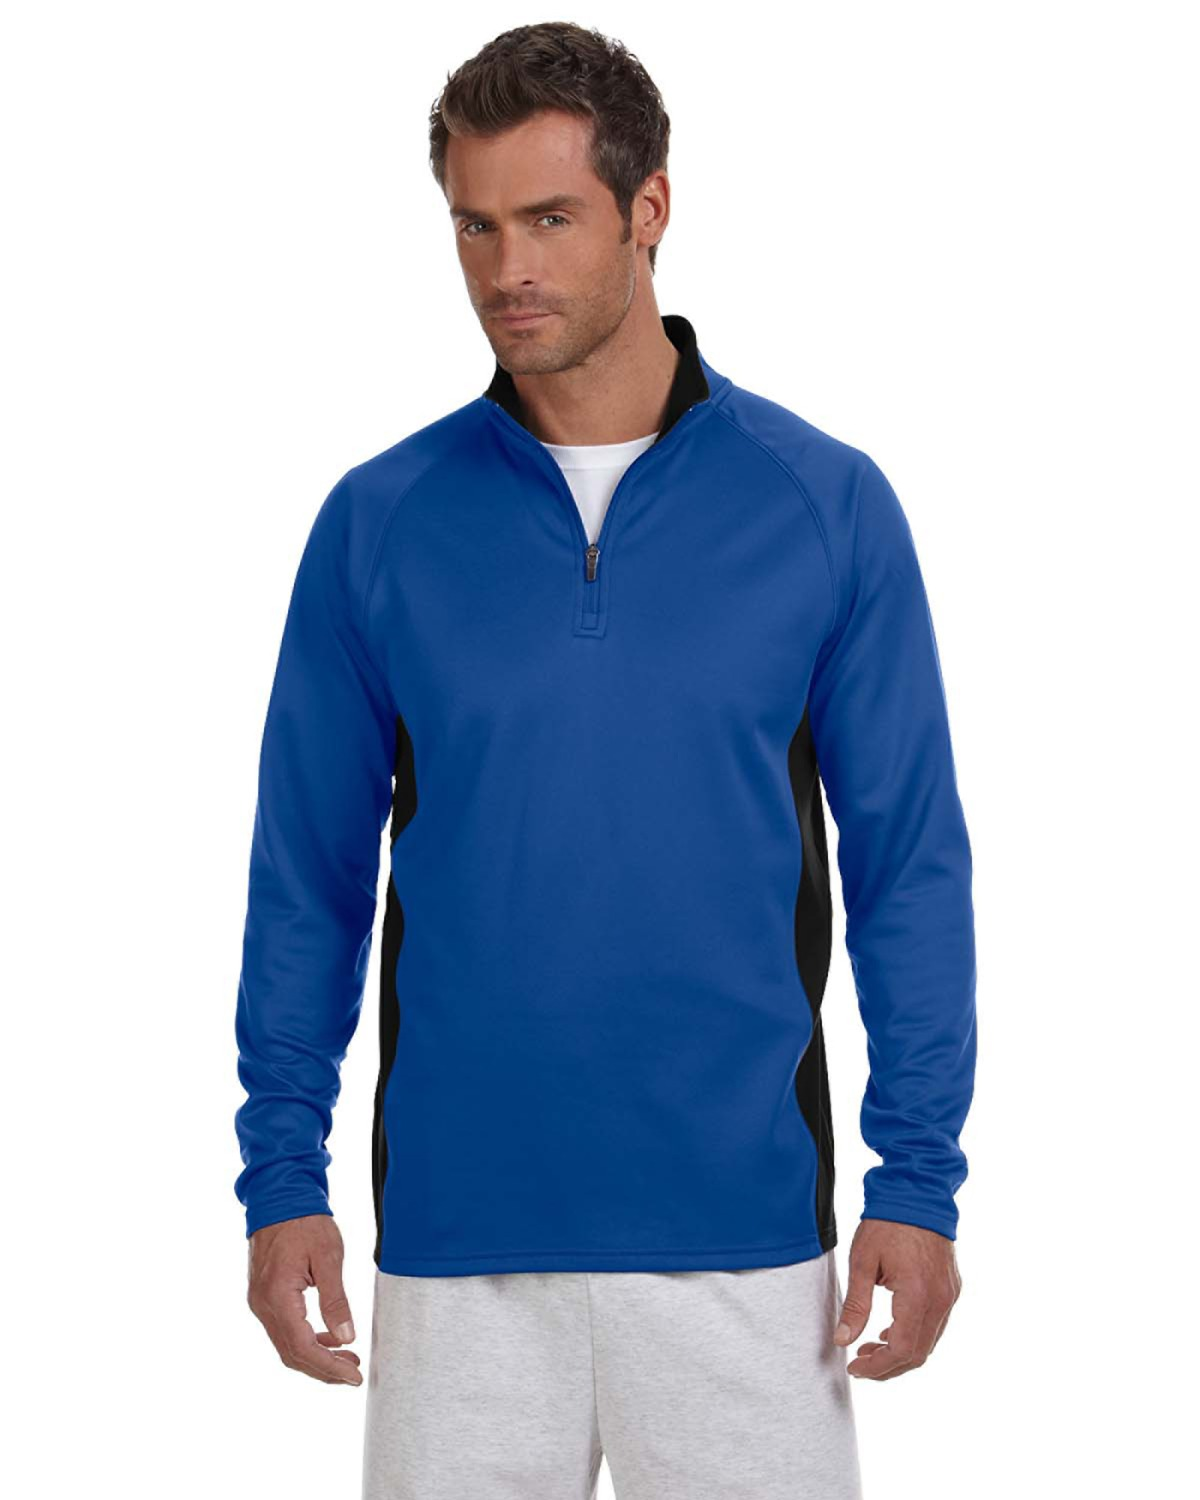 Champion S230 - Colorblocked Performance Quarter-Zip Pullover Sweatshirt